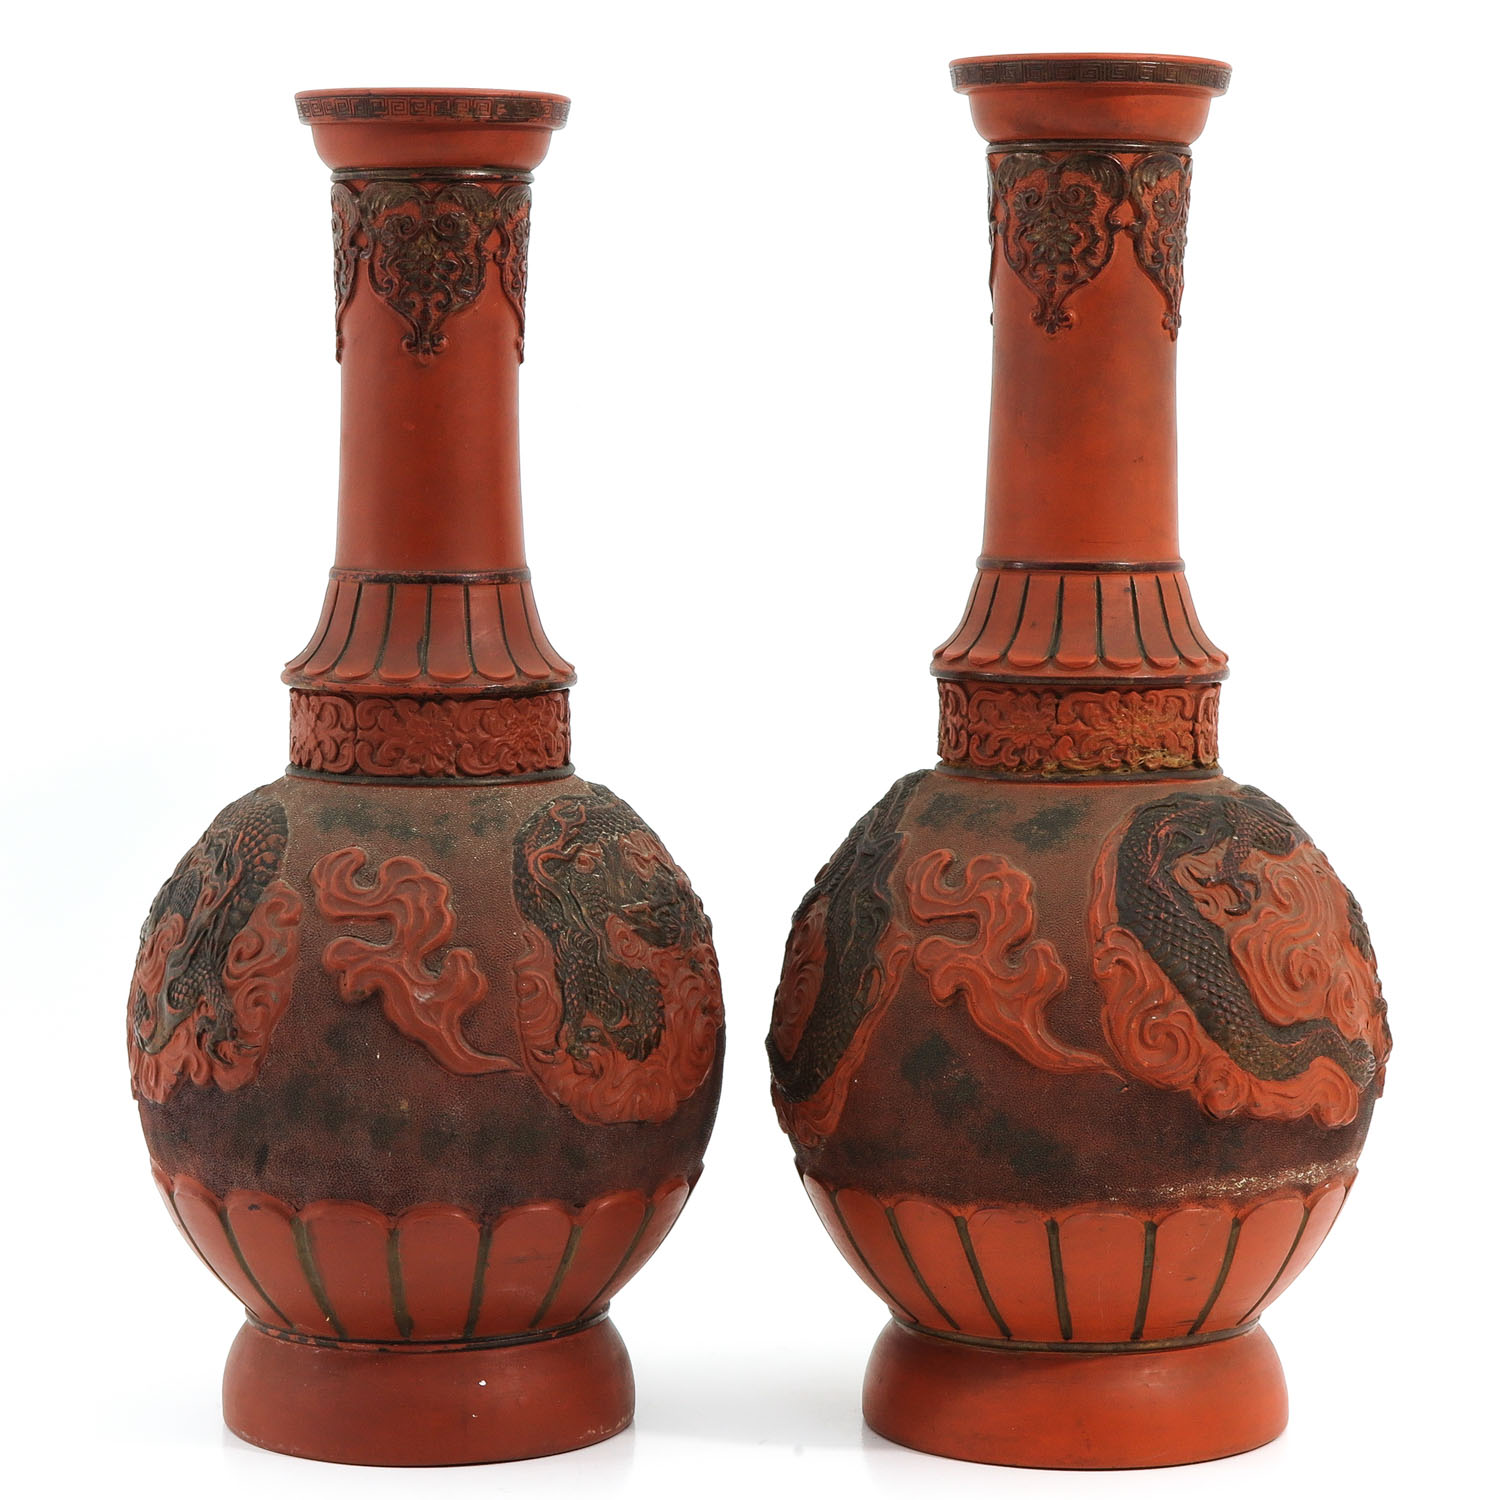 A Pair of Stoneware Vases - Image 4 of 10